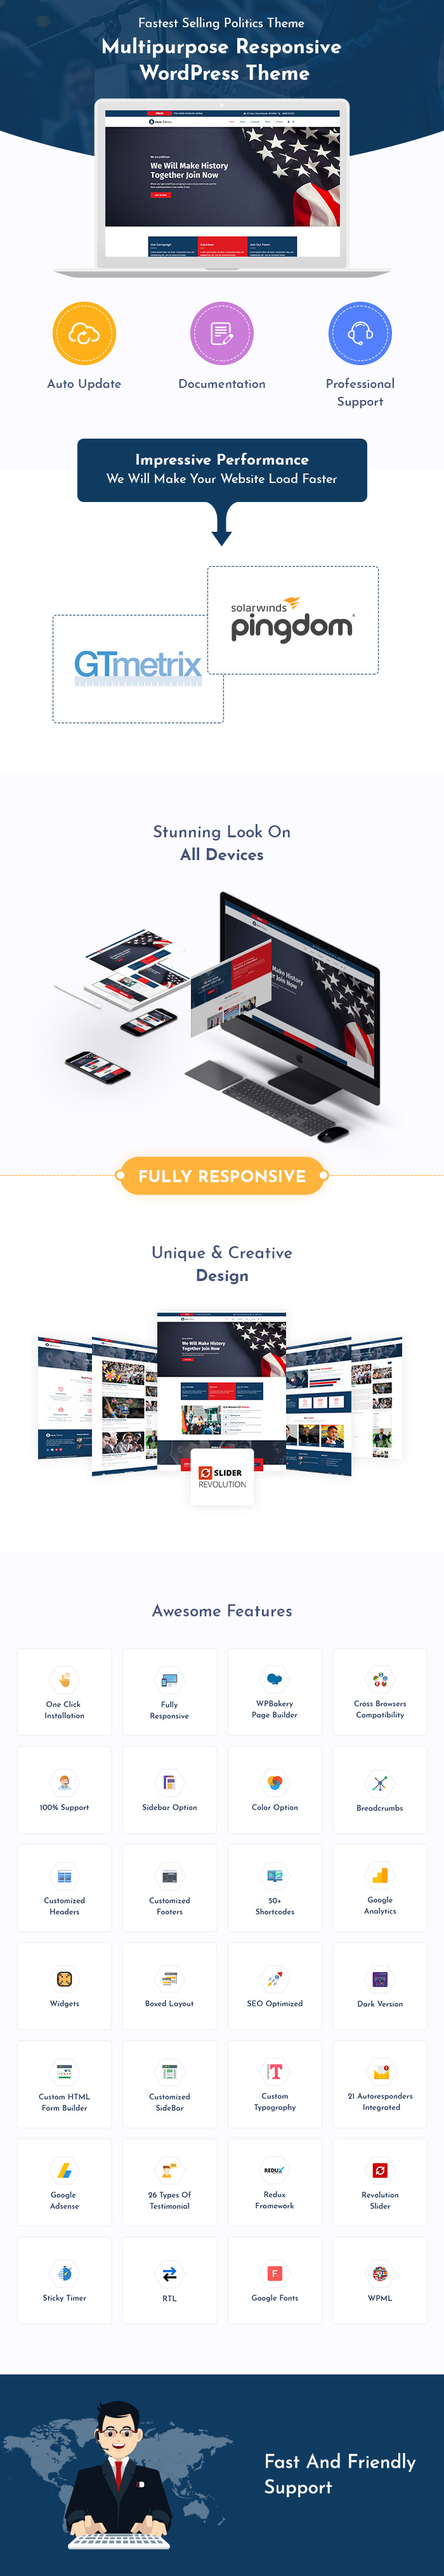 Political Campaign WordPress Themes